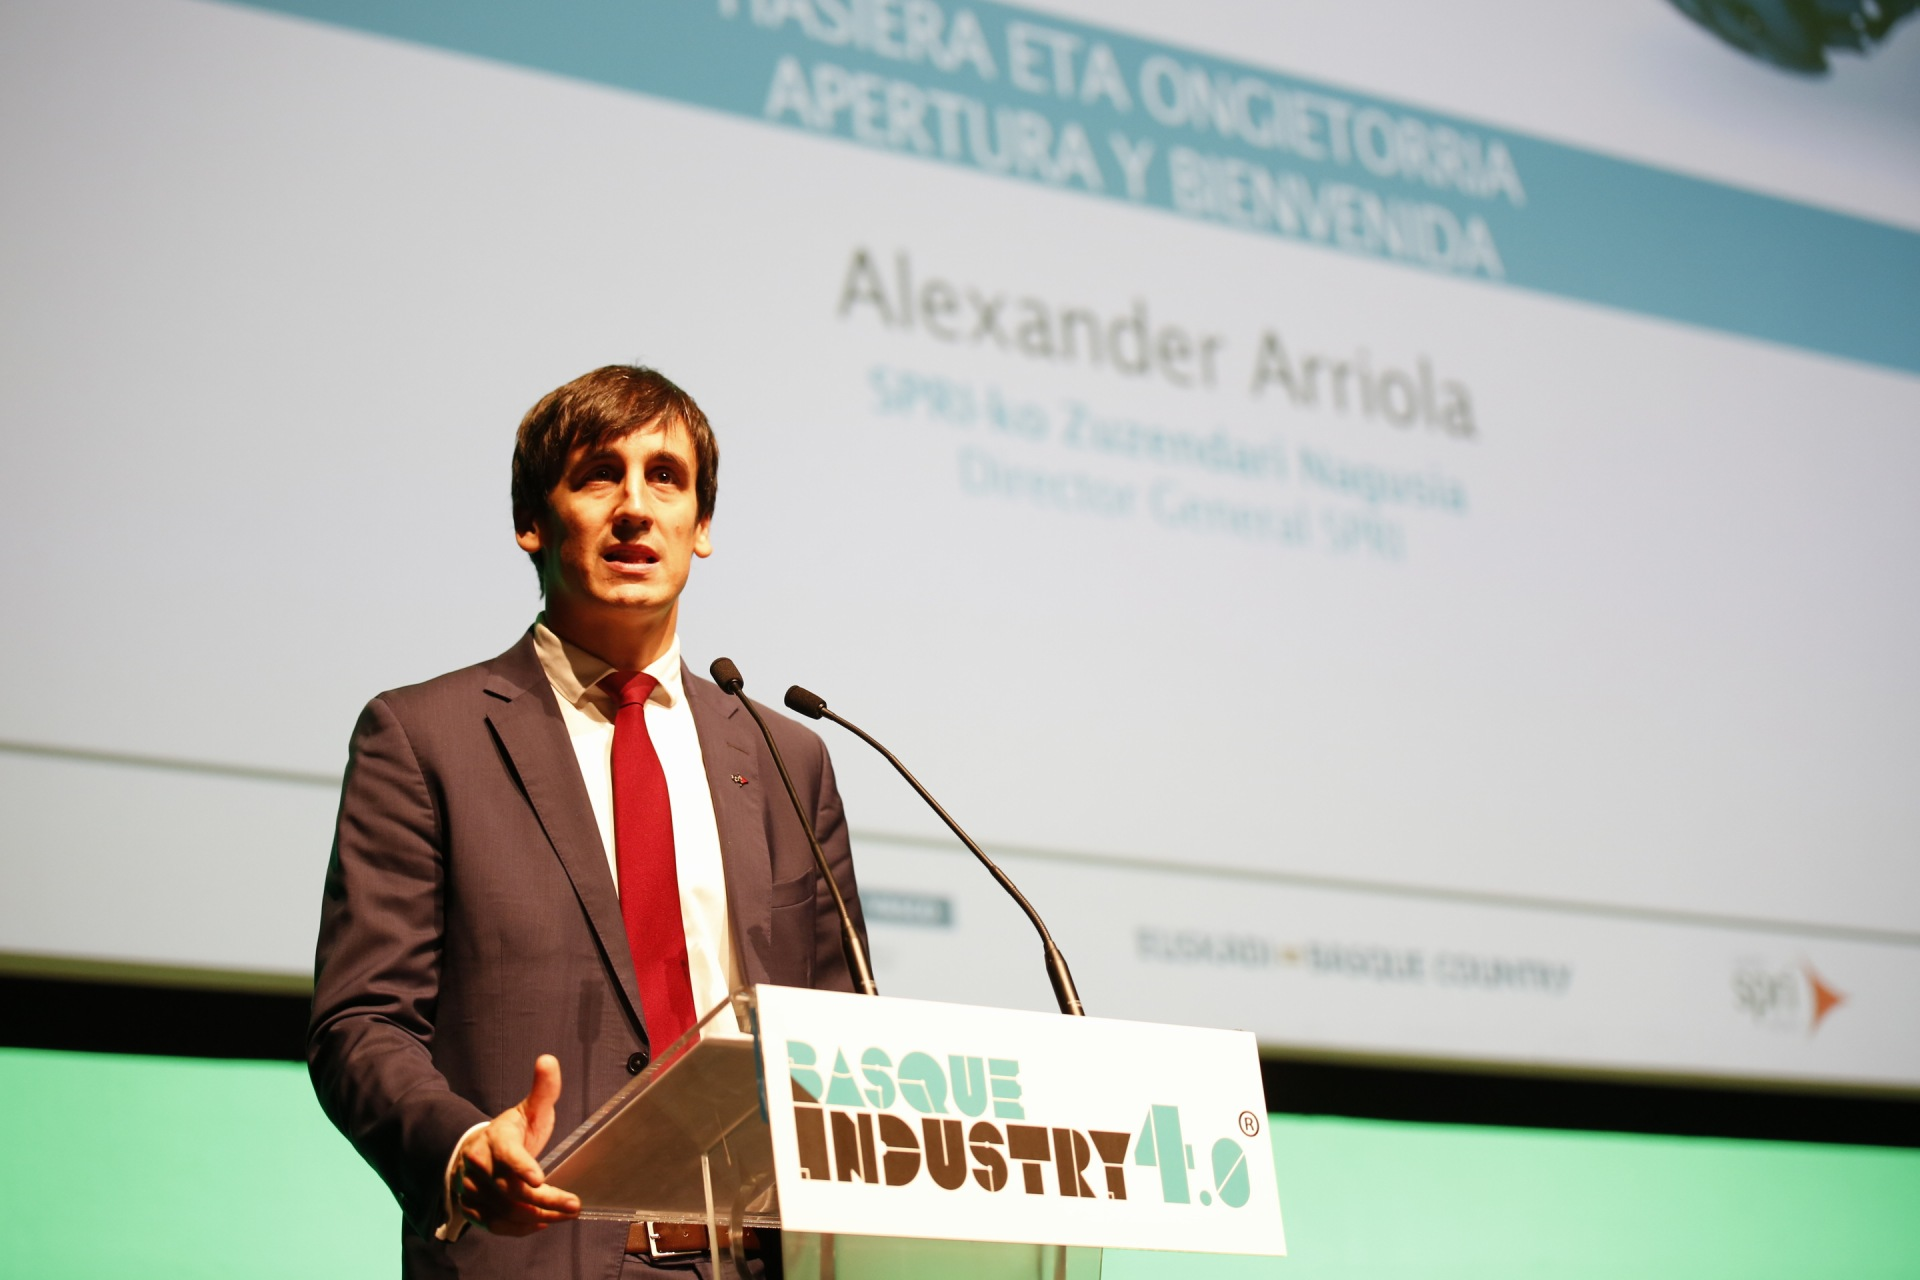 arriola-basque-industry.jpg